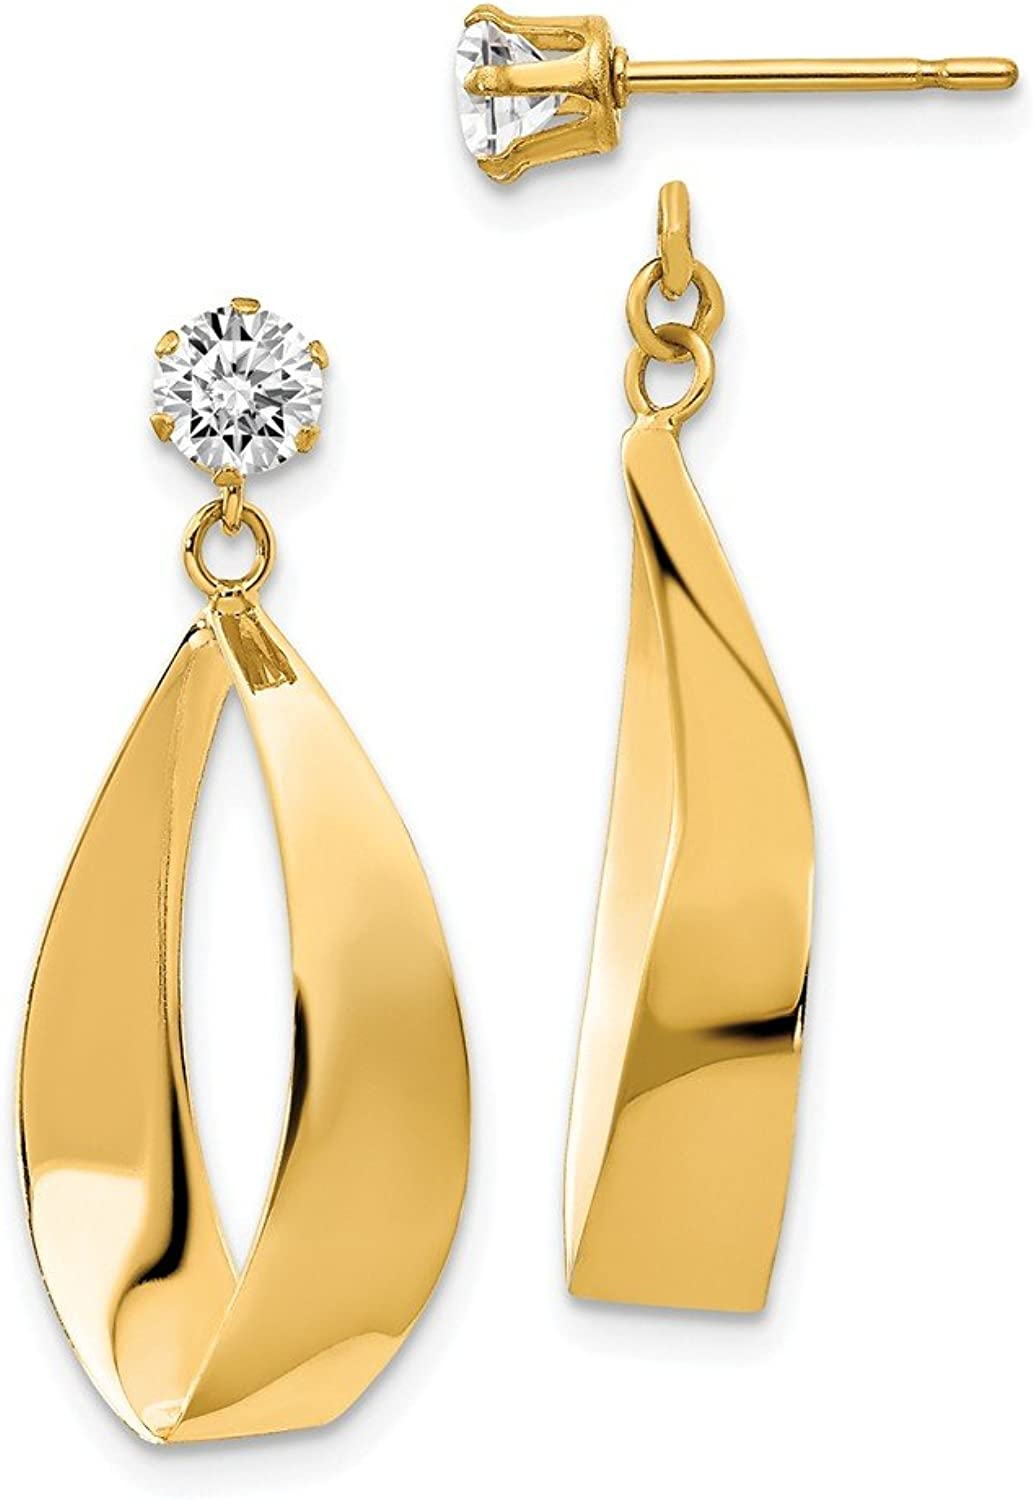 Beautiful Yellow gold 14K Yellowgold 14k Polished Oval Dangle with CZ Stud Earring Jackets